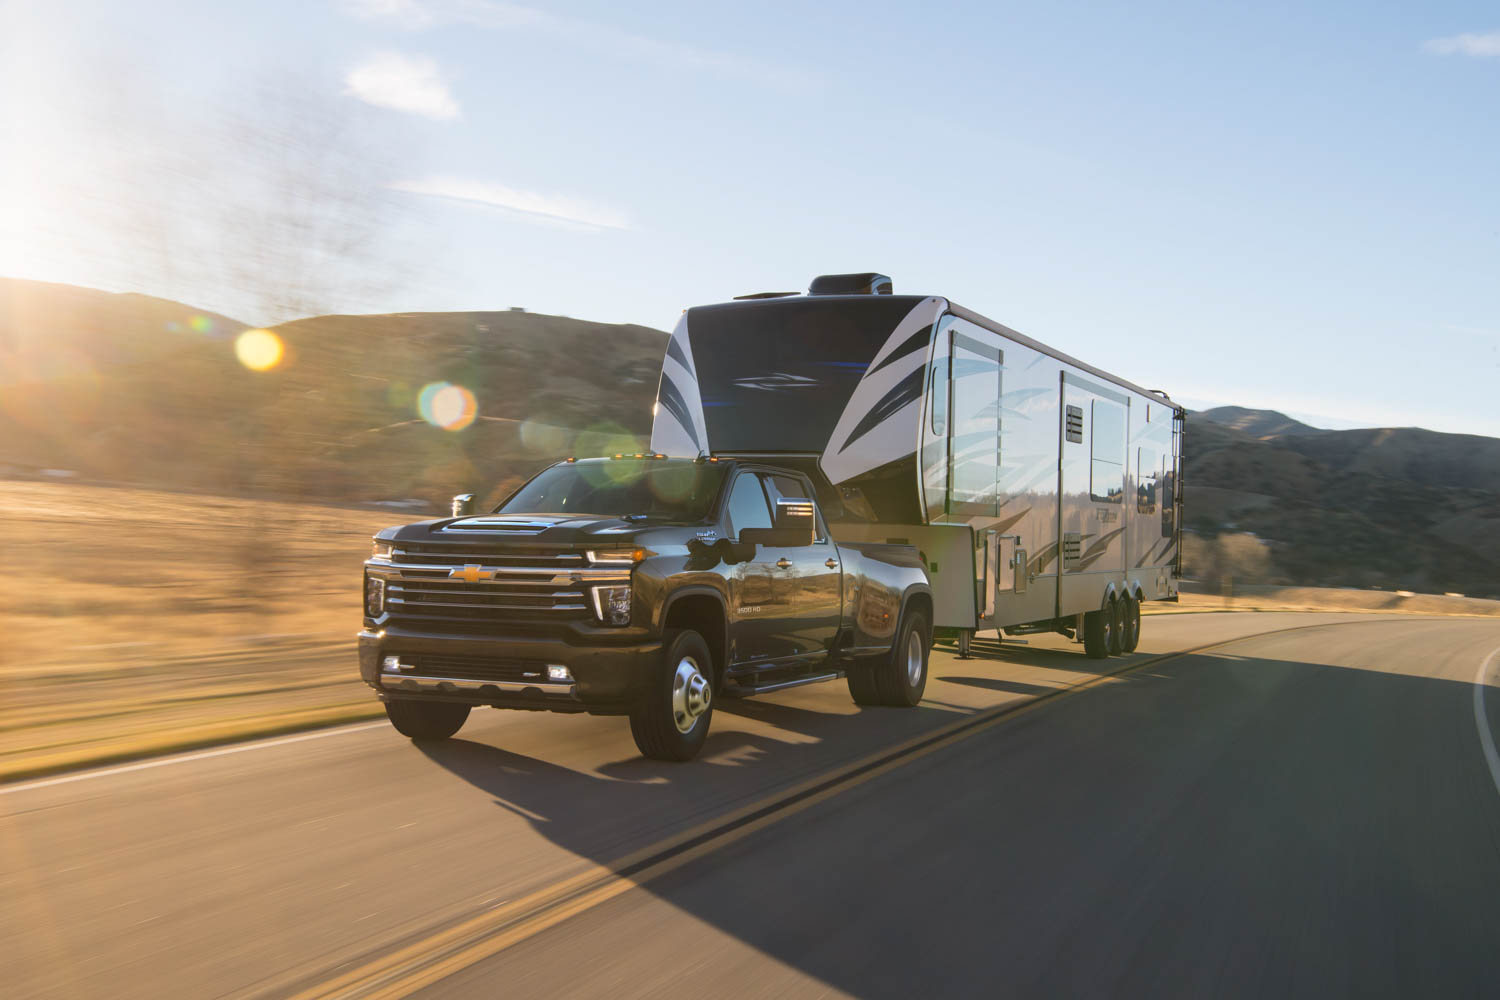 2020 Chevrolet Silverado 3500HD trailer